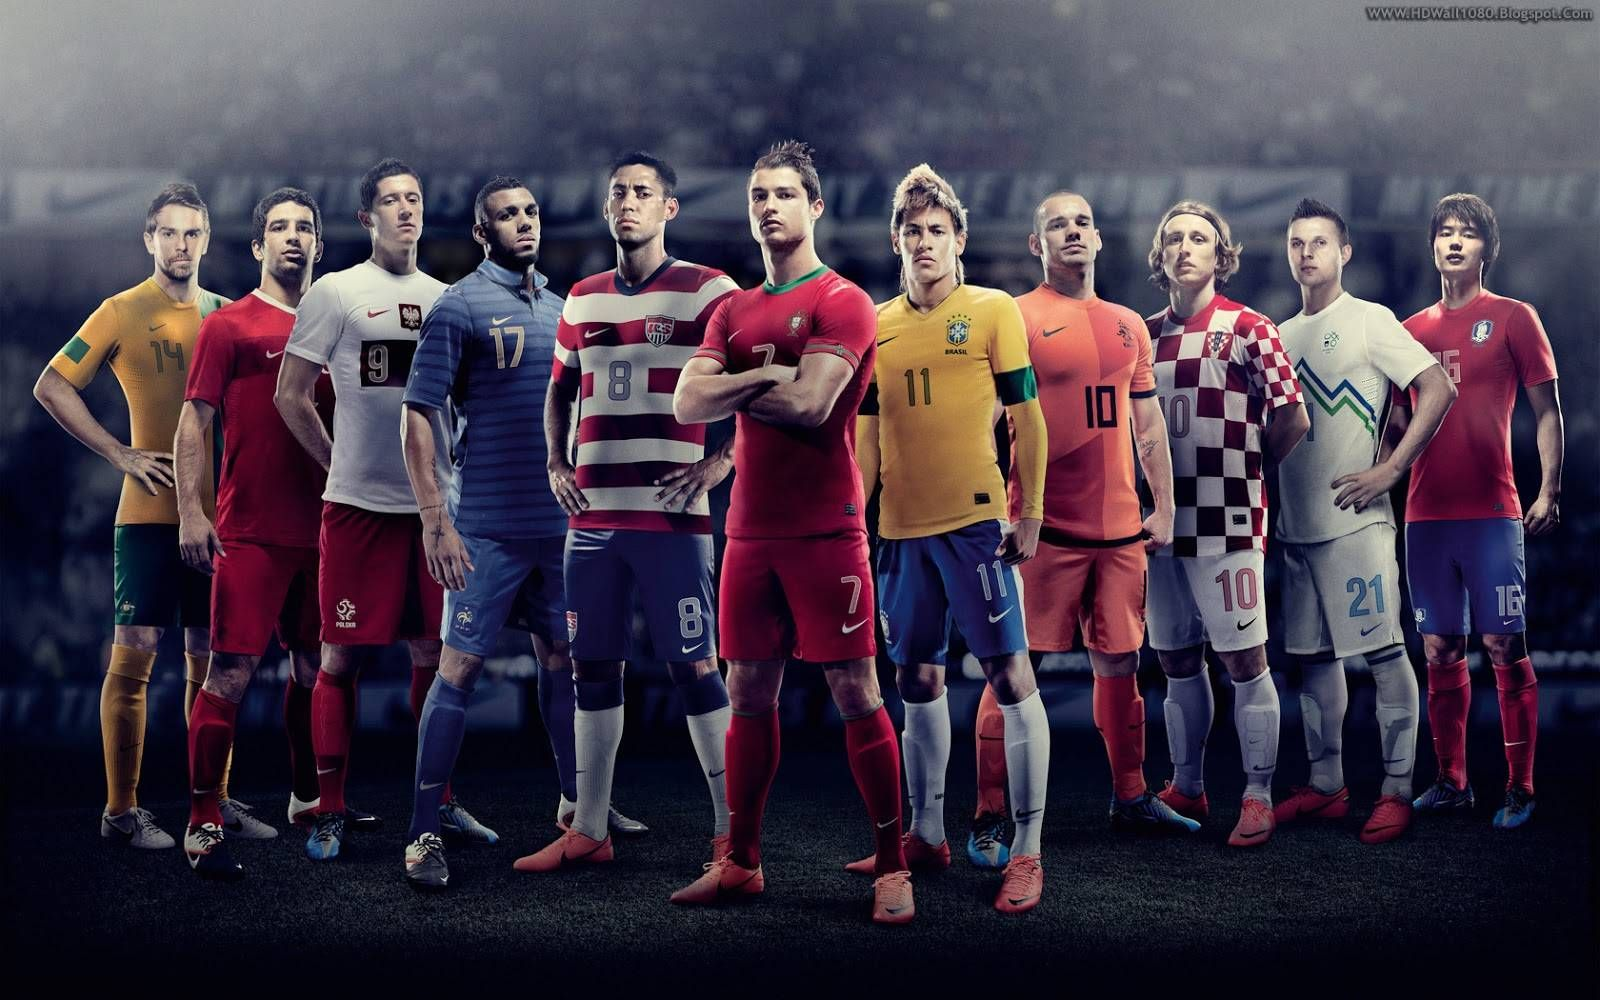 Fifa 14 wallpaper hd ideas for the house pinterest fifa fifa 14 wallpaper hd voltagebd Image collections